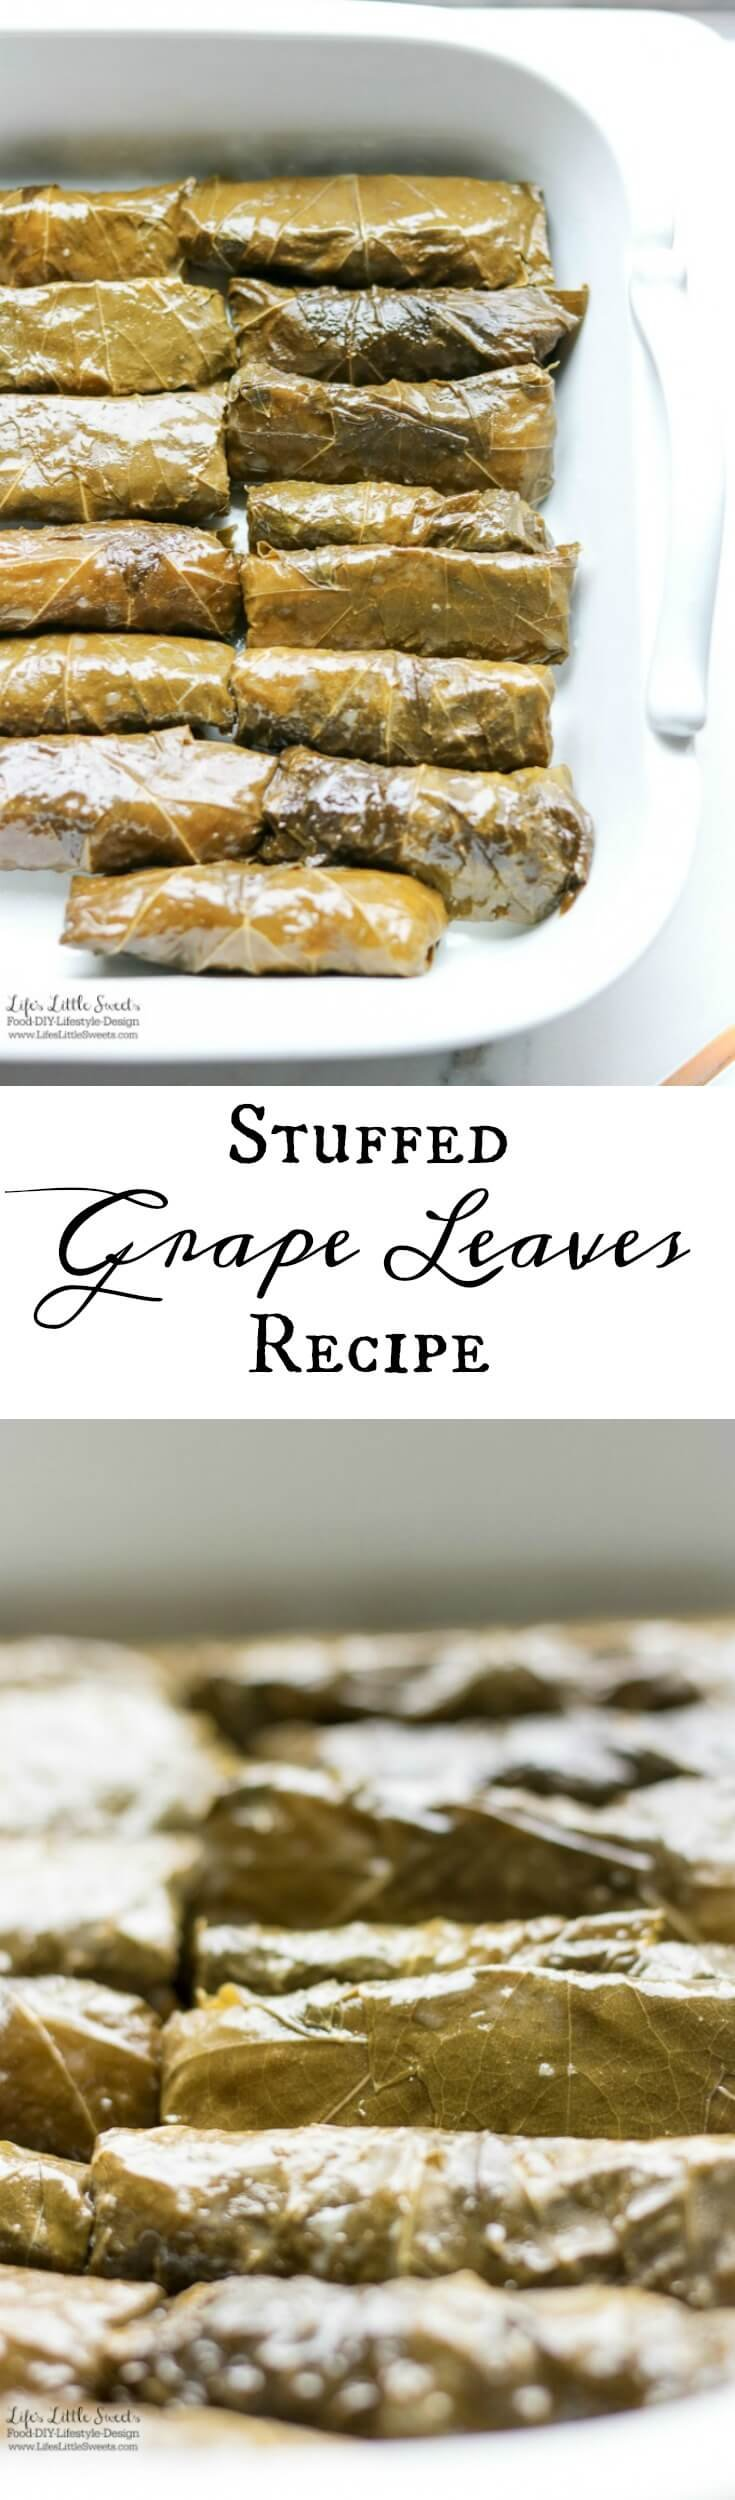 This Stuffed Grape Leaves Recipe is perfect for Spring and Summer; enjoy them at picnics, a party or a family gathering. They are stuffed with cooked rice, dill, mint with fresh squeezed lemon juice and then wrapped in delicious grape leaves. (serve hot or cold, vegan option)